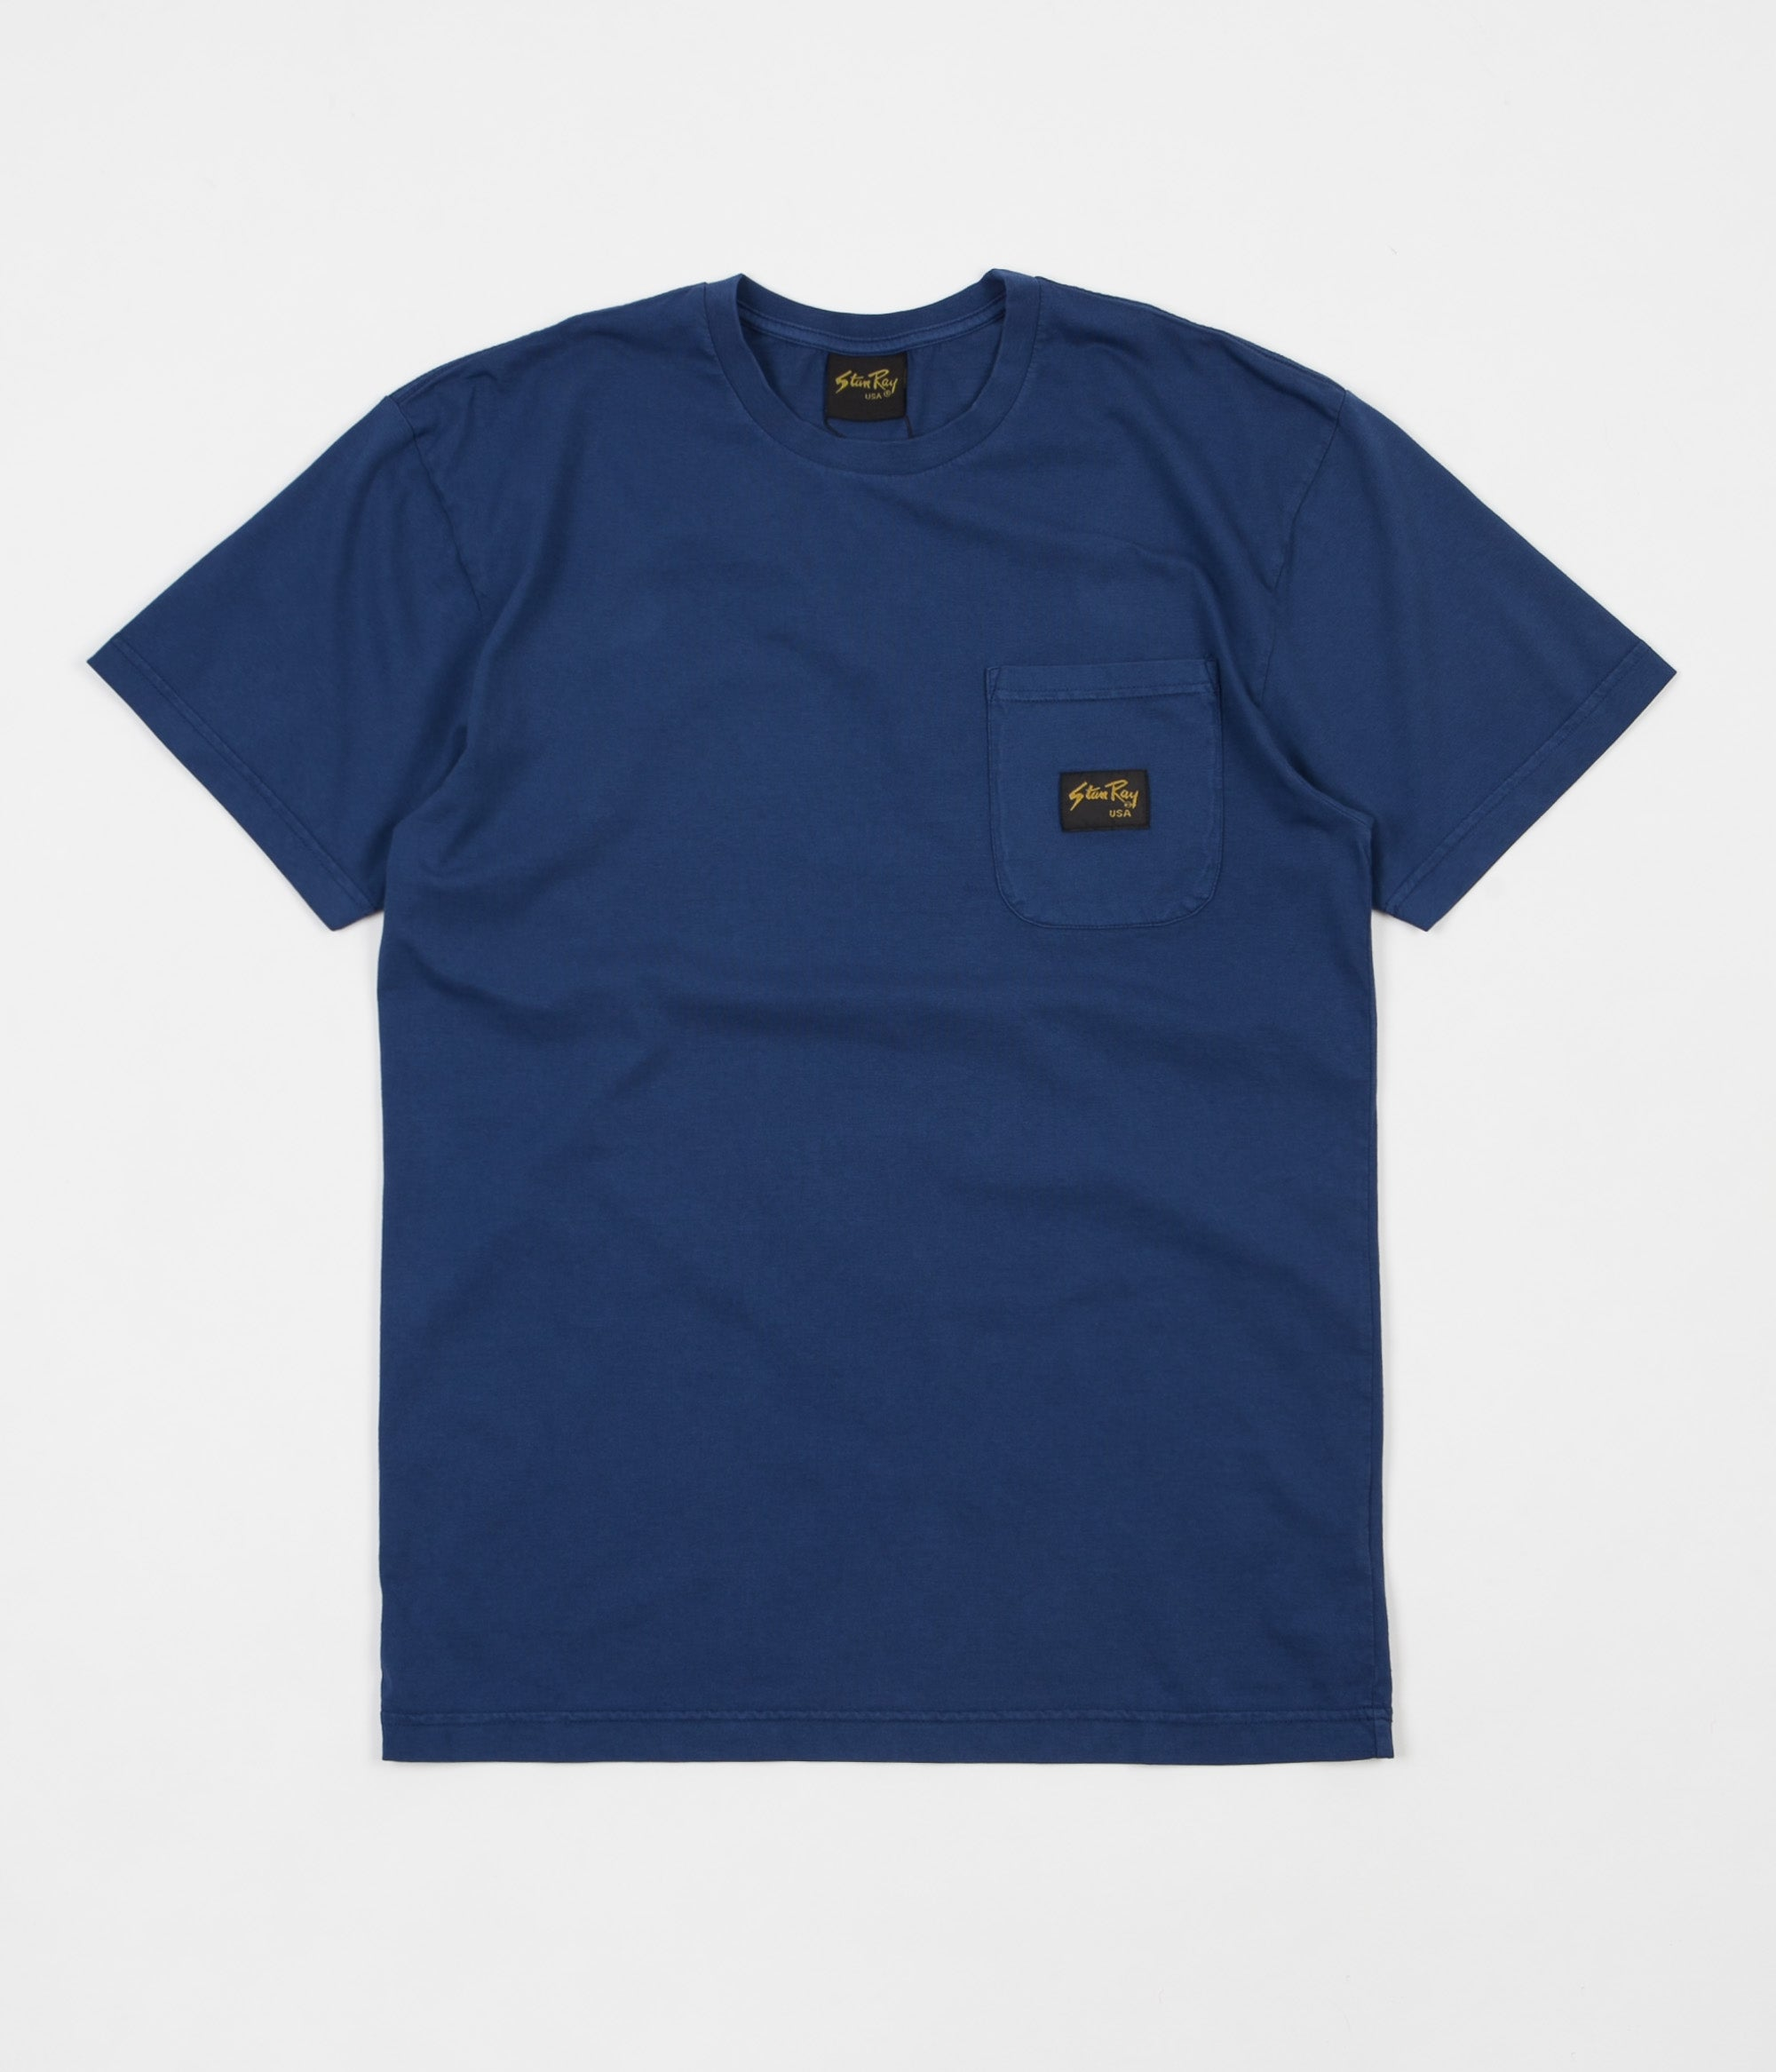 Stan Ray Stan Patch Pocket T-Shirt - Indigo  ee9961a05079